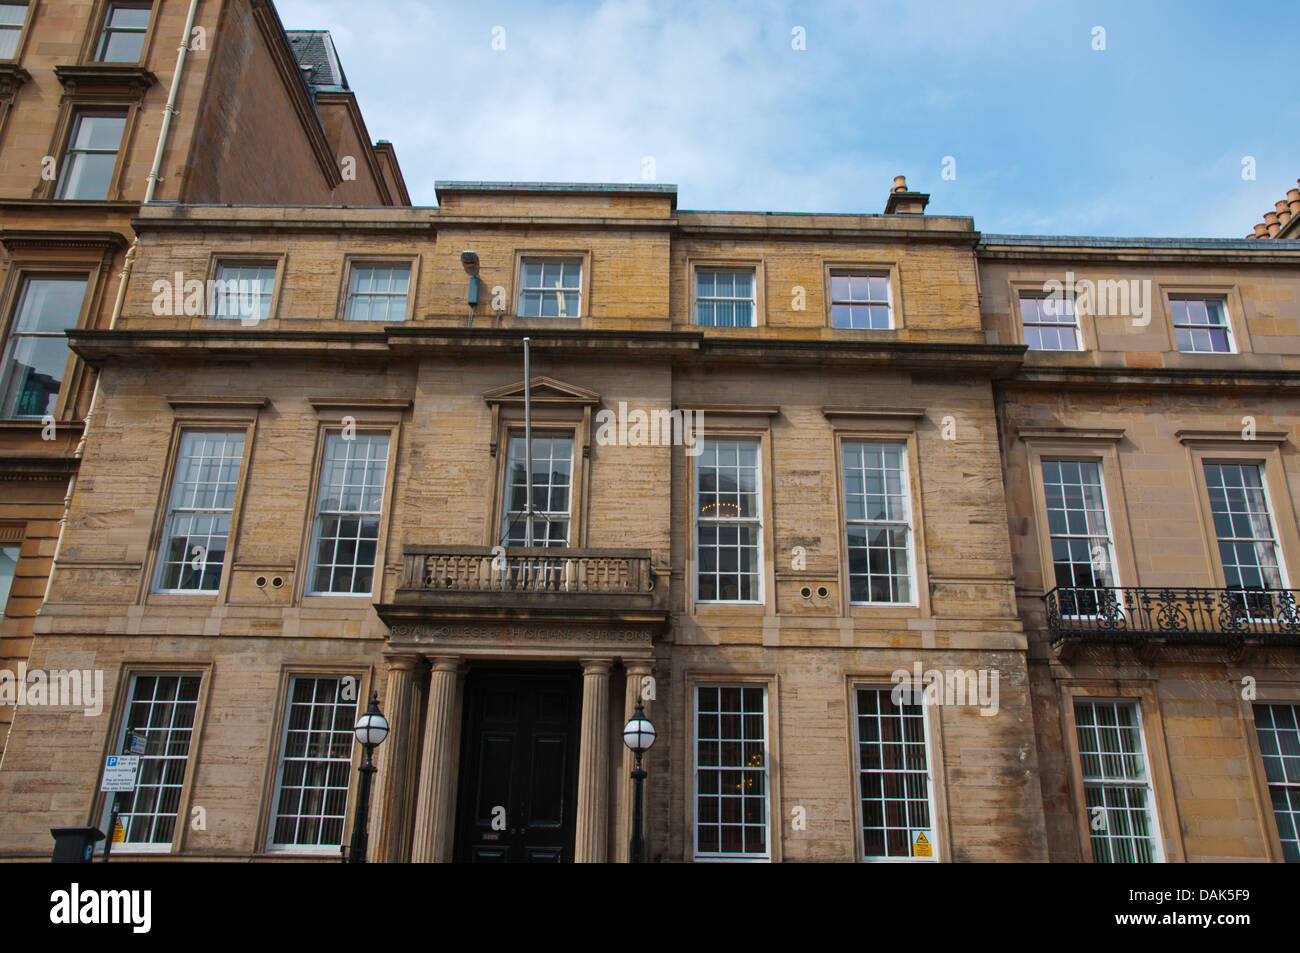 Royal college of physicians and surgeons Vincent street central Glasgow Scotland Britain UK Europe - Stock Image